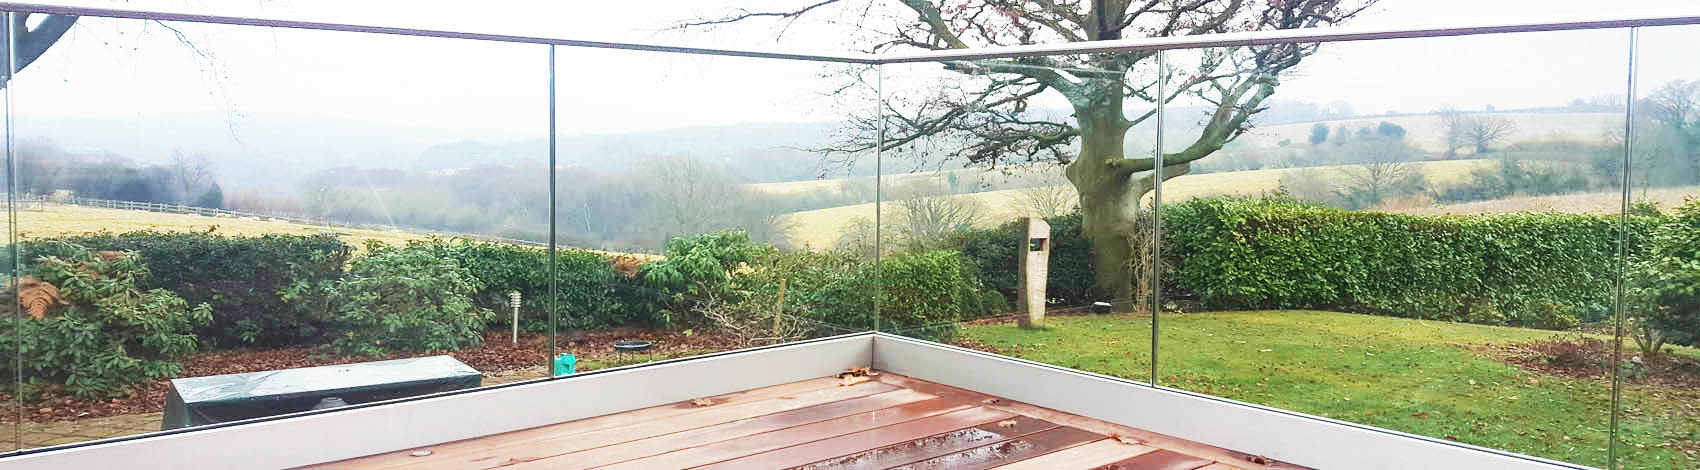 Frameless glass balustrade on timber decking